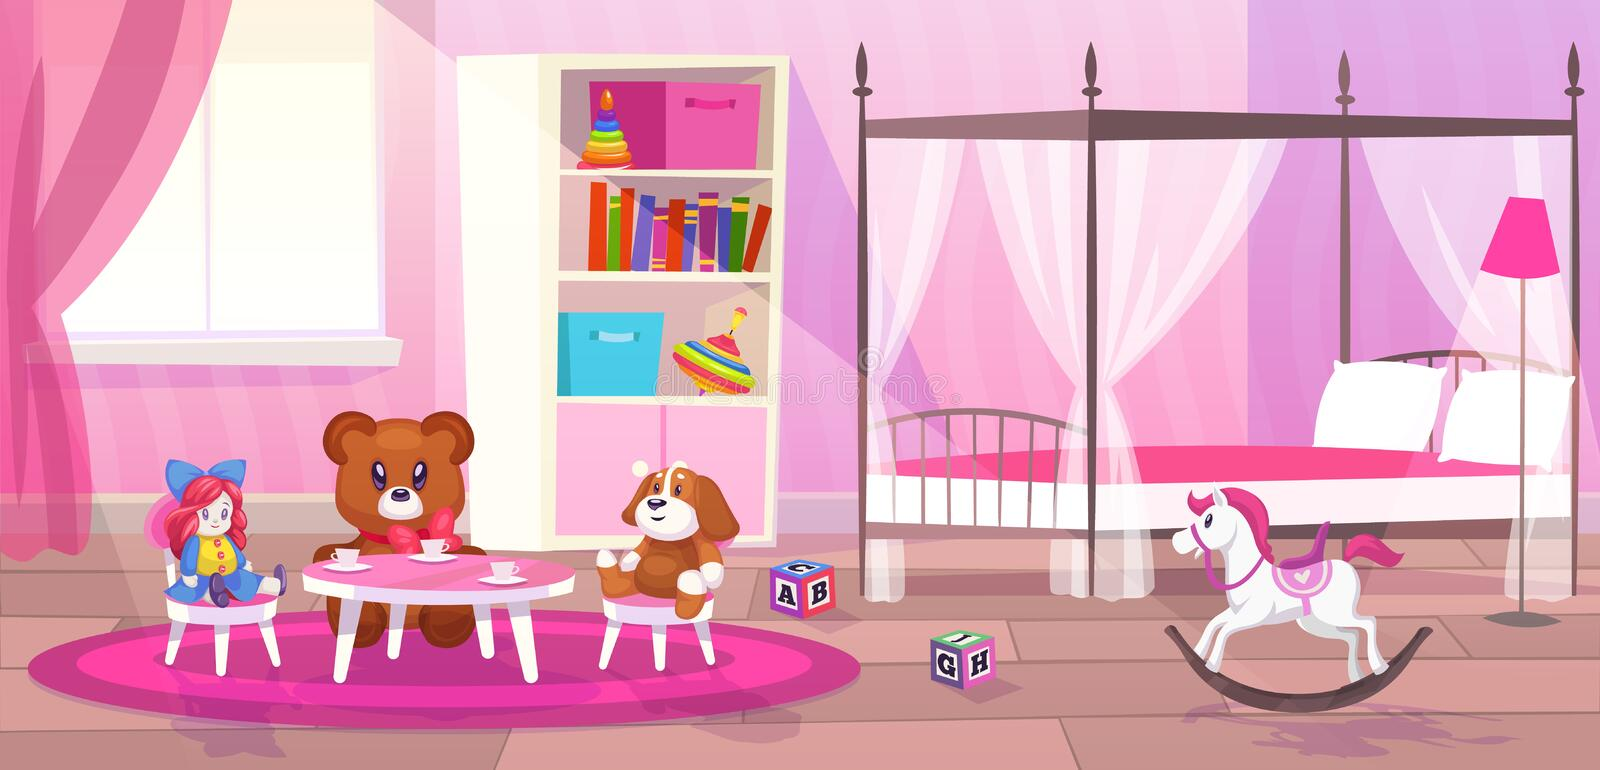 Bed room girl. Child bedroom interior girls apartment toys girly storage decor furniture kid playroom flat cartoon stock illustration